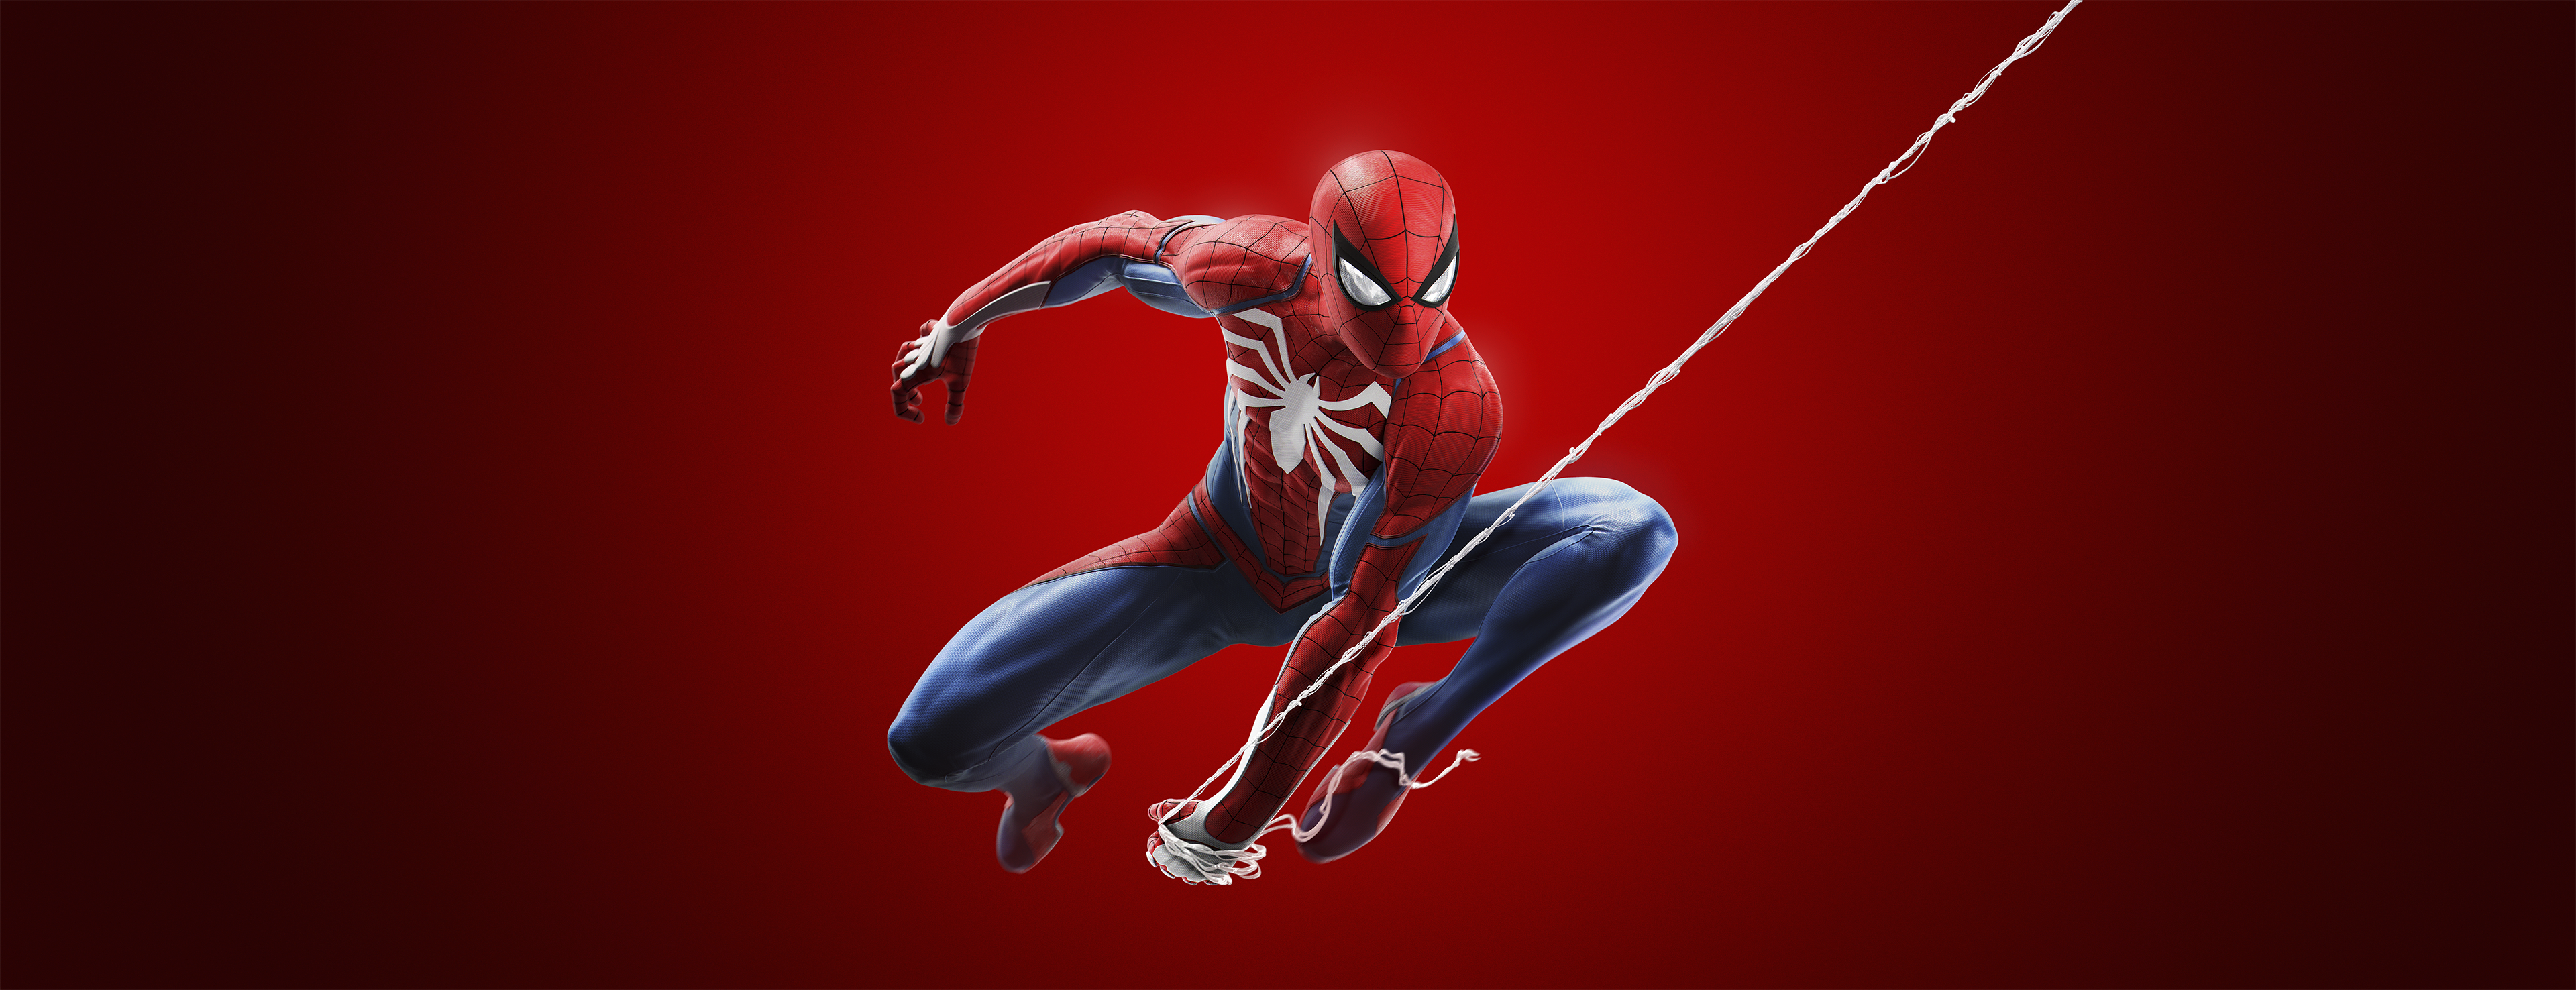 spider-man remastered hero